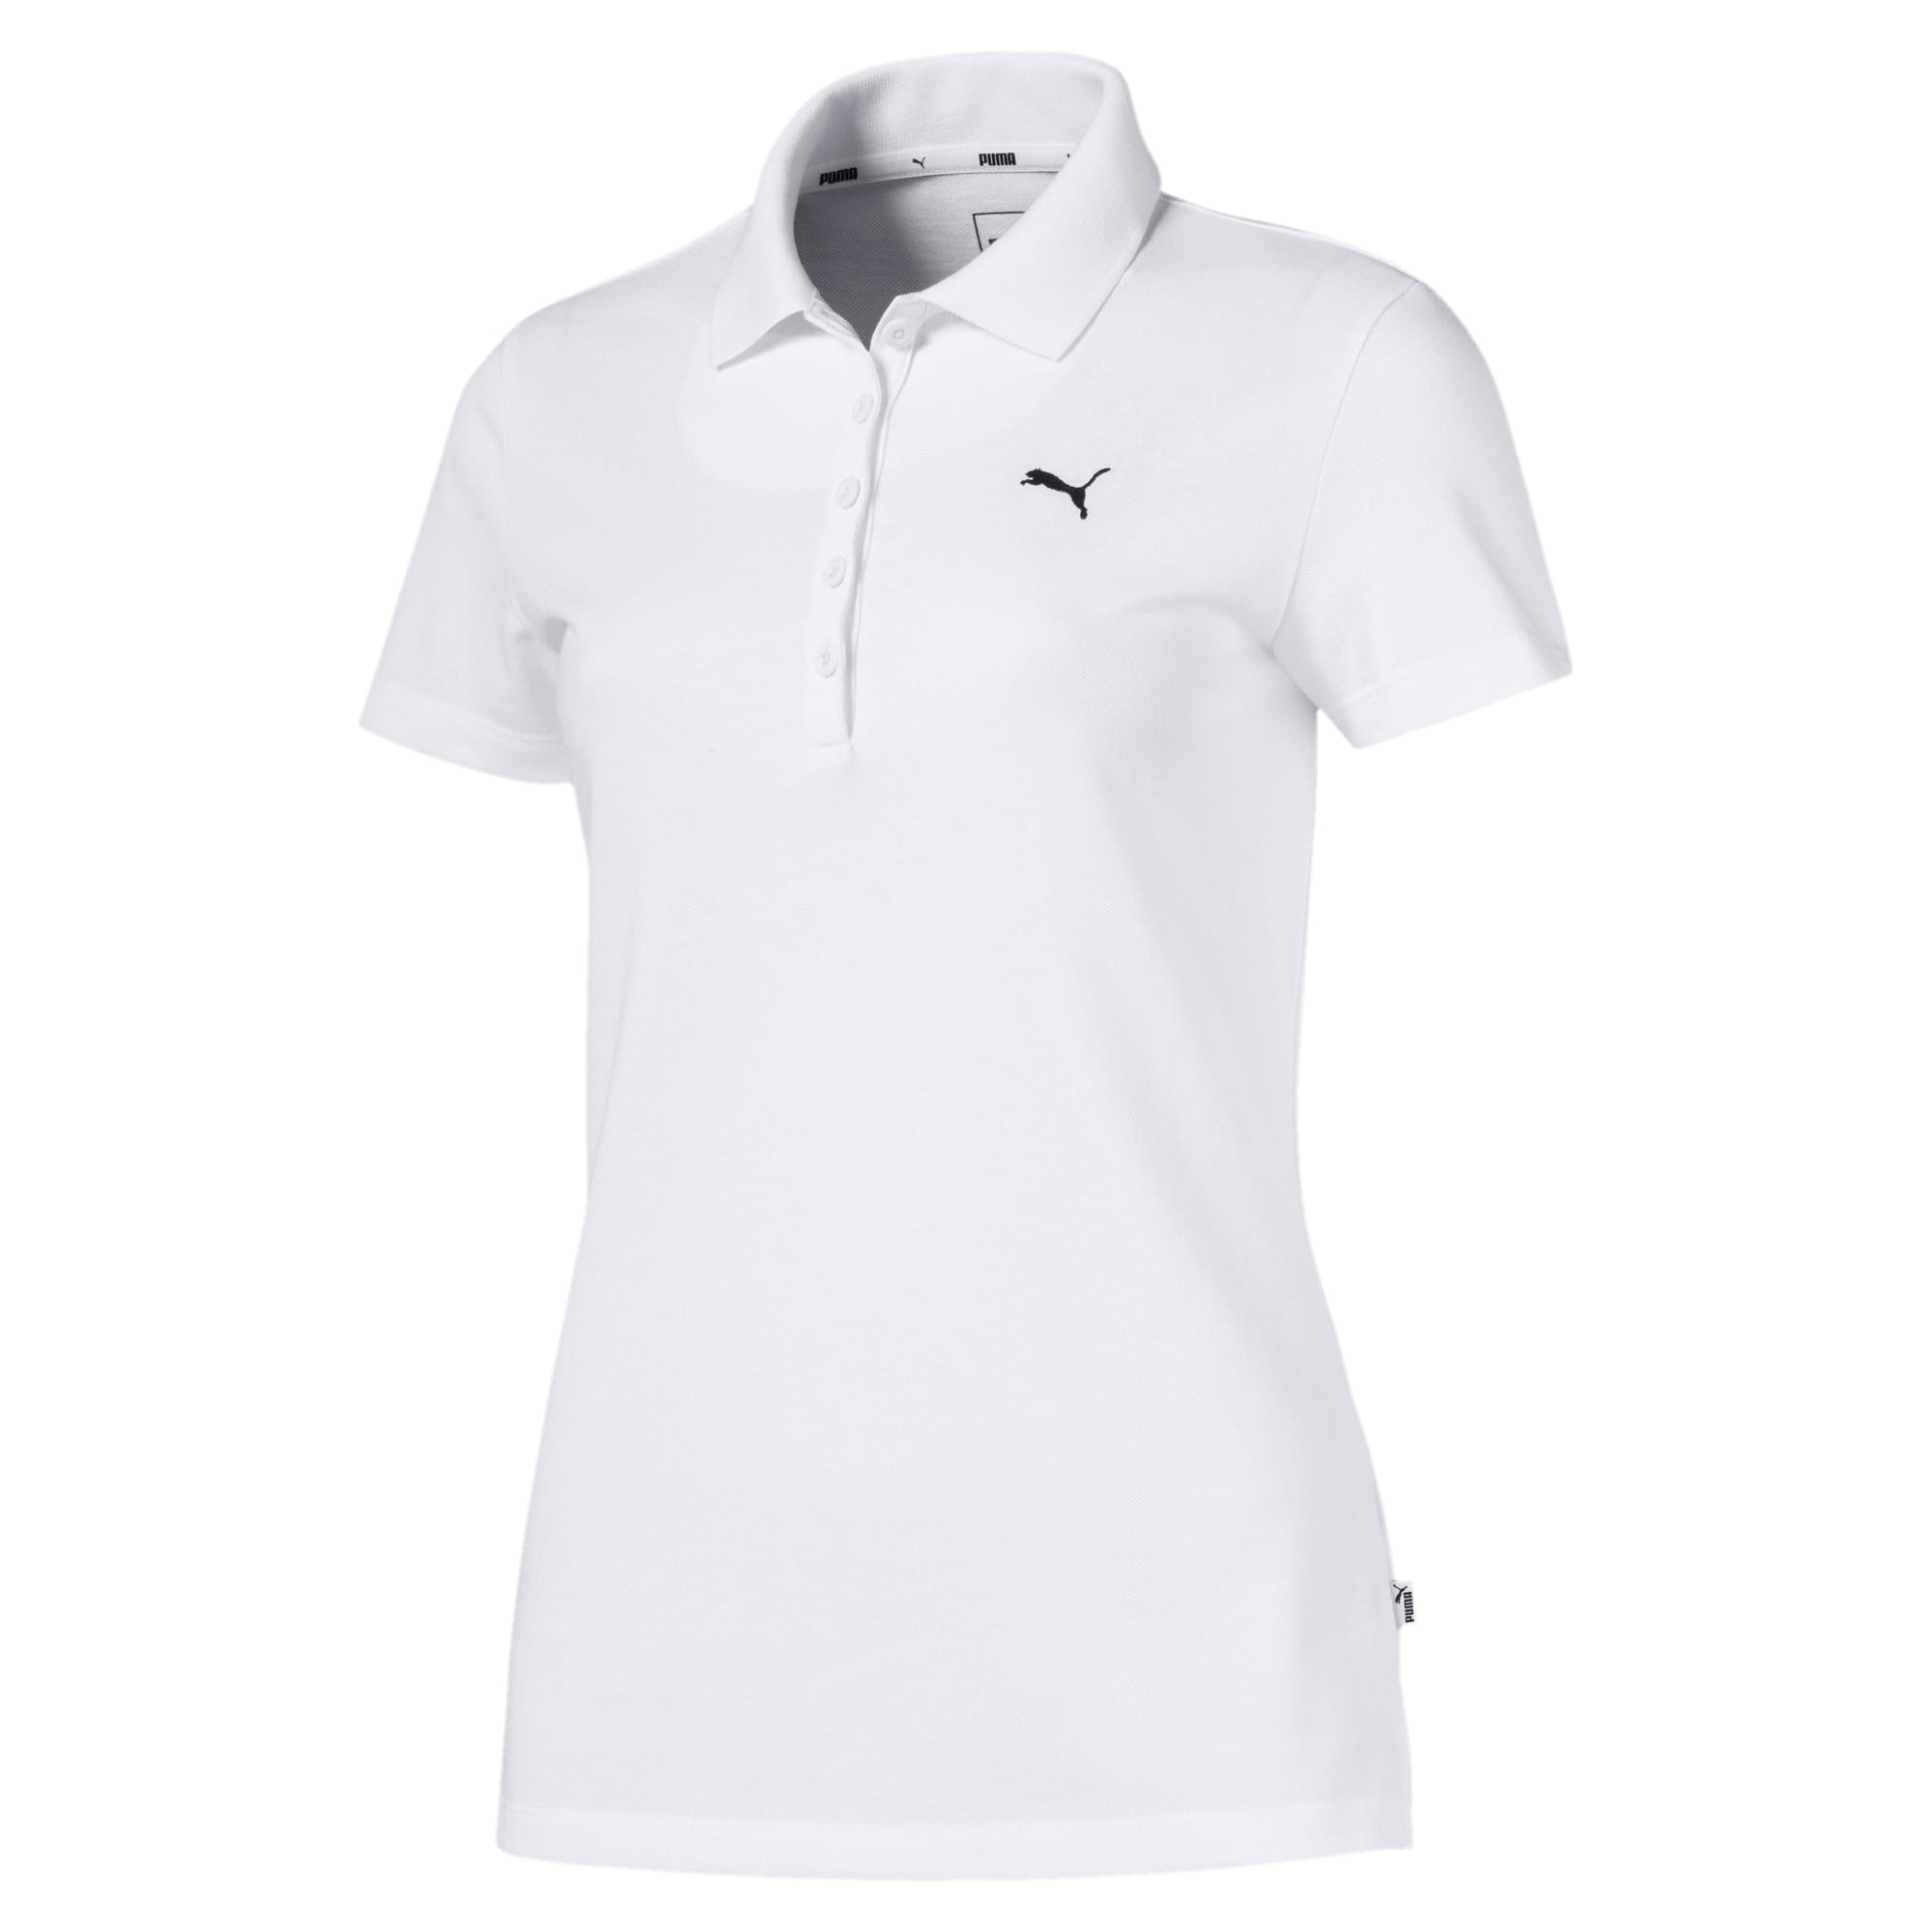 Essentials Women's Polo, Puma White-Cat, large